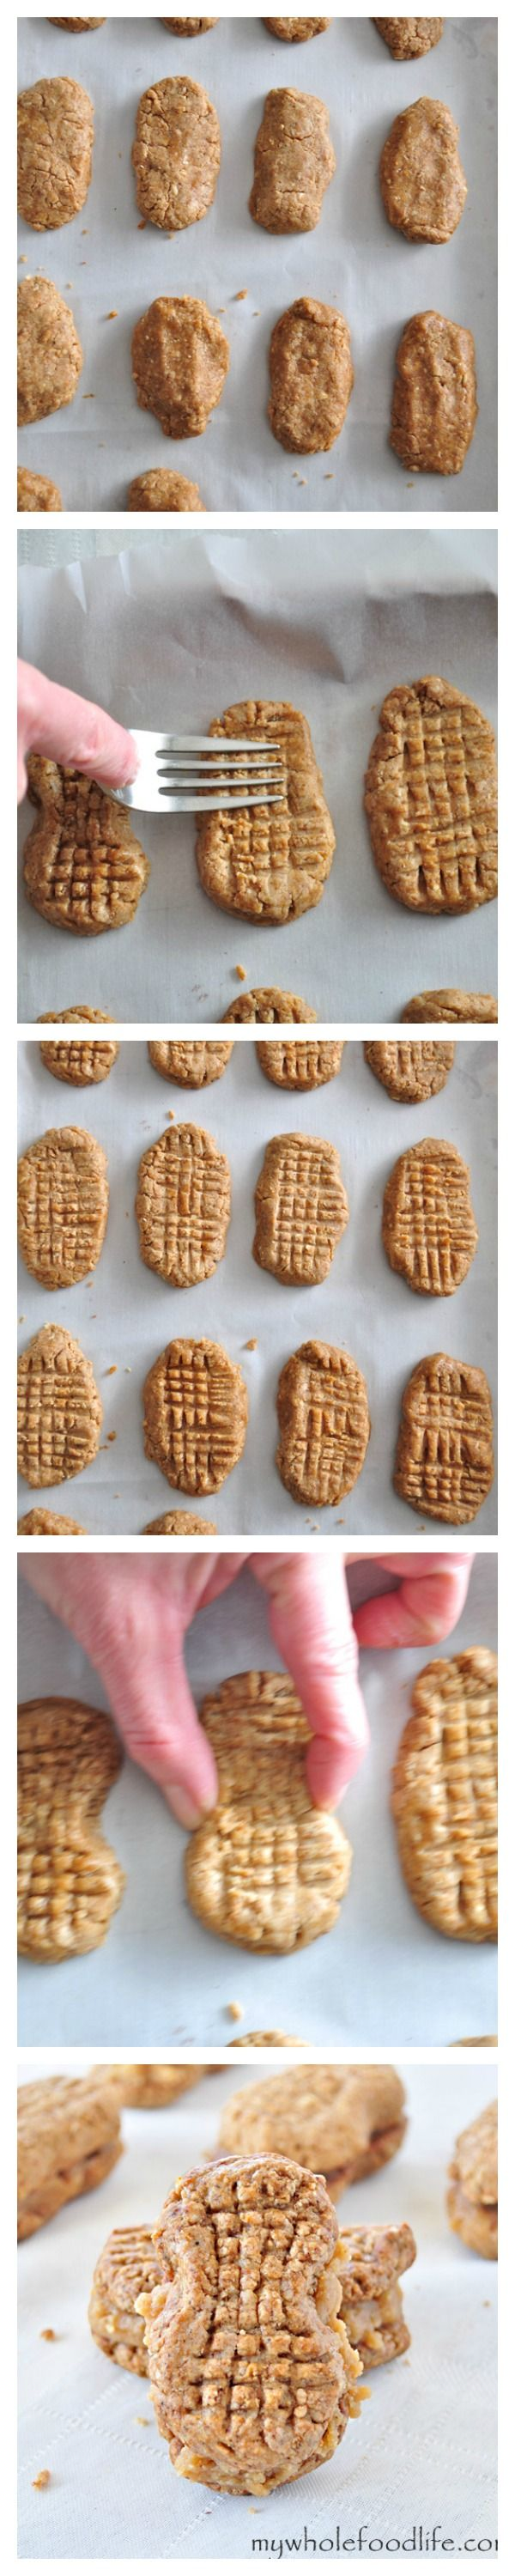 Gluten Free Nutter Butters. Way better than store bought and easier than you think! For serious peanut butter lovers. NO refined sugars, NO refined flours and full of peanut buttery goodness. #vegan #glutenfree #nutterbutters #cookies #peanutbutter